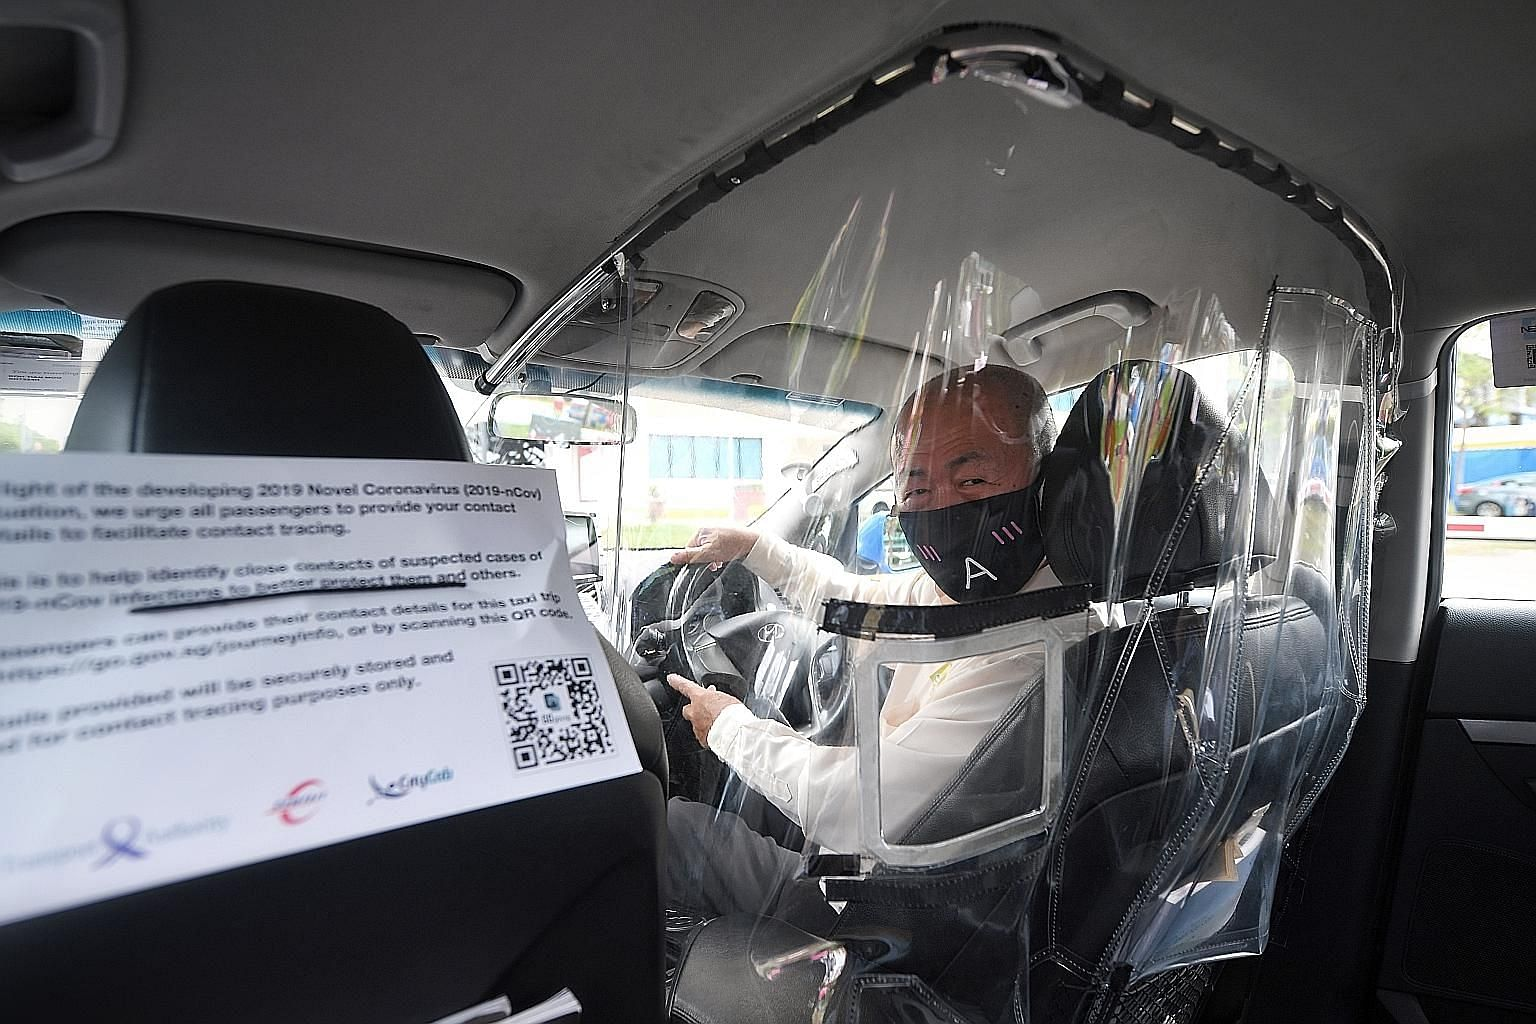 Taxi driver Koh Tian Moo, 66, in a cab that has been fitted with a plastic shield to minimise contact between drivers and passengers amid the Covid-19 outbreak. ComfortDelGro Corp will fit 400 of its 10,000 cabs with these shields as part of a trial.